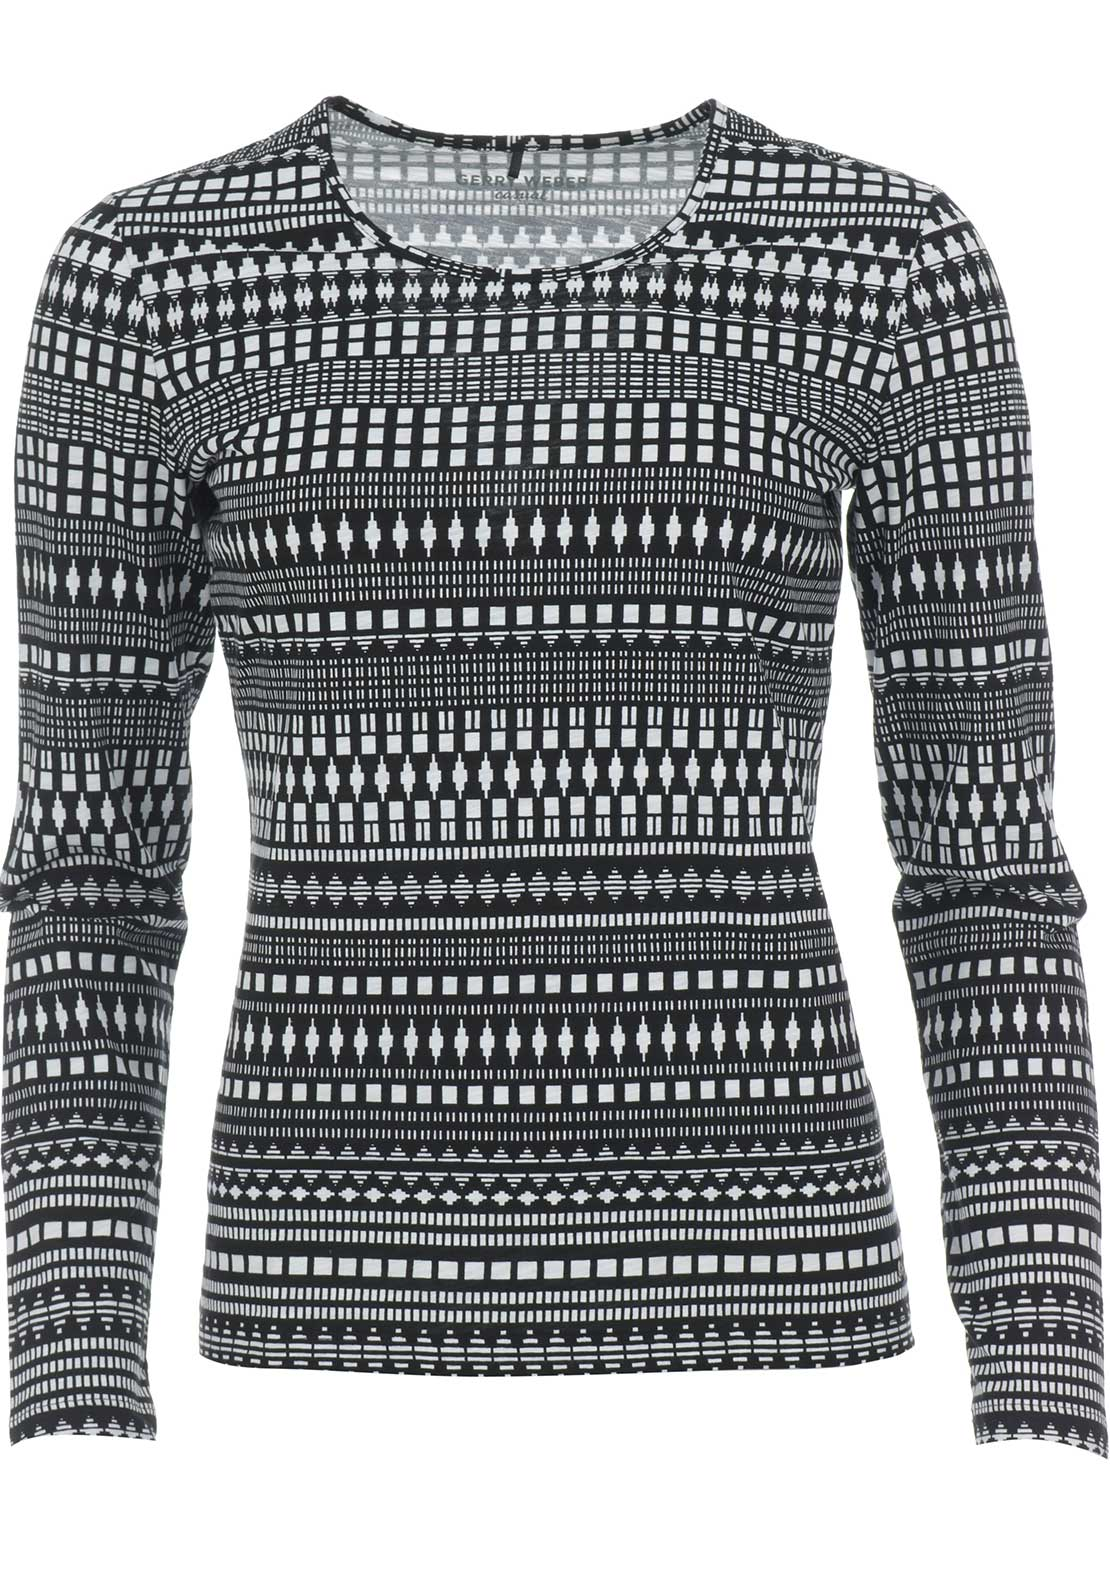 Gerry Weber Ethnic Print Top, Black & White